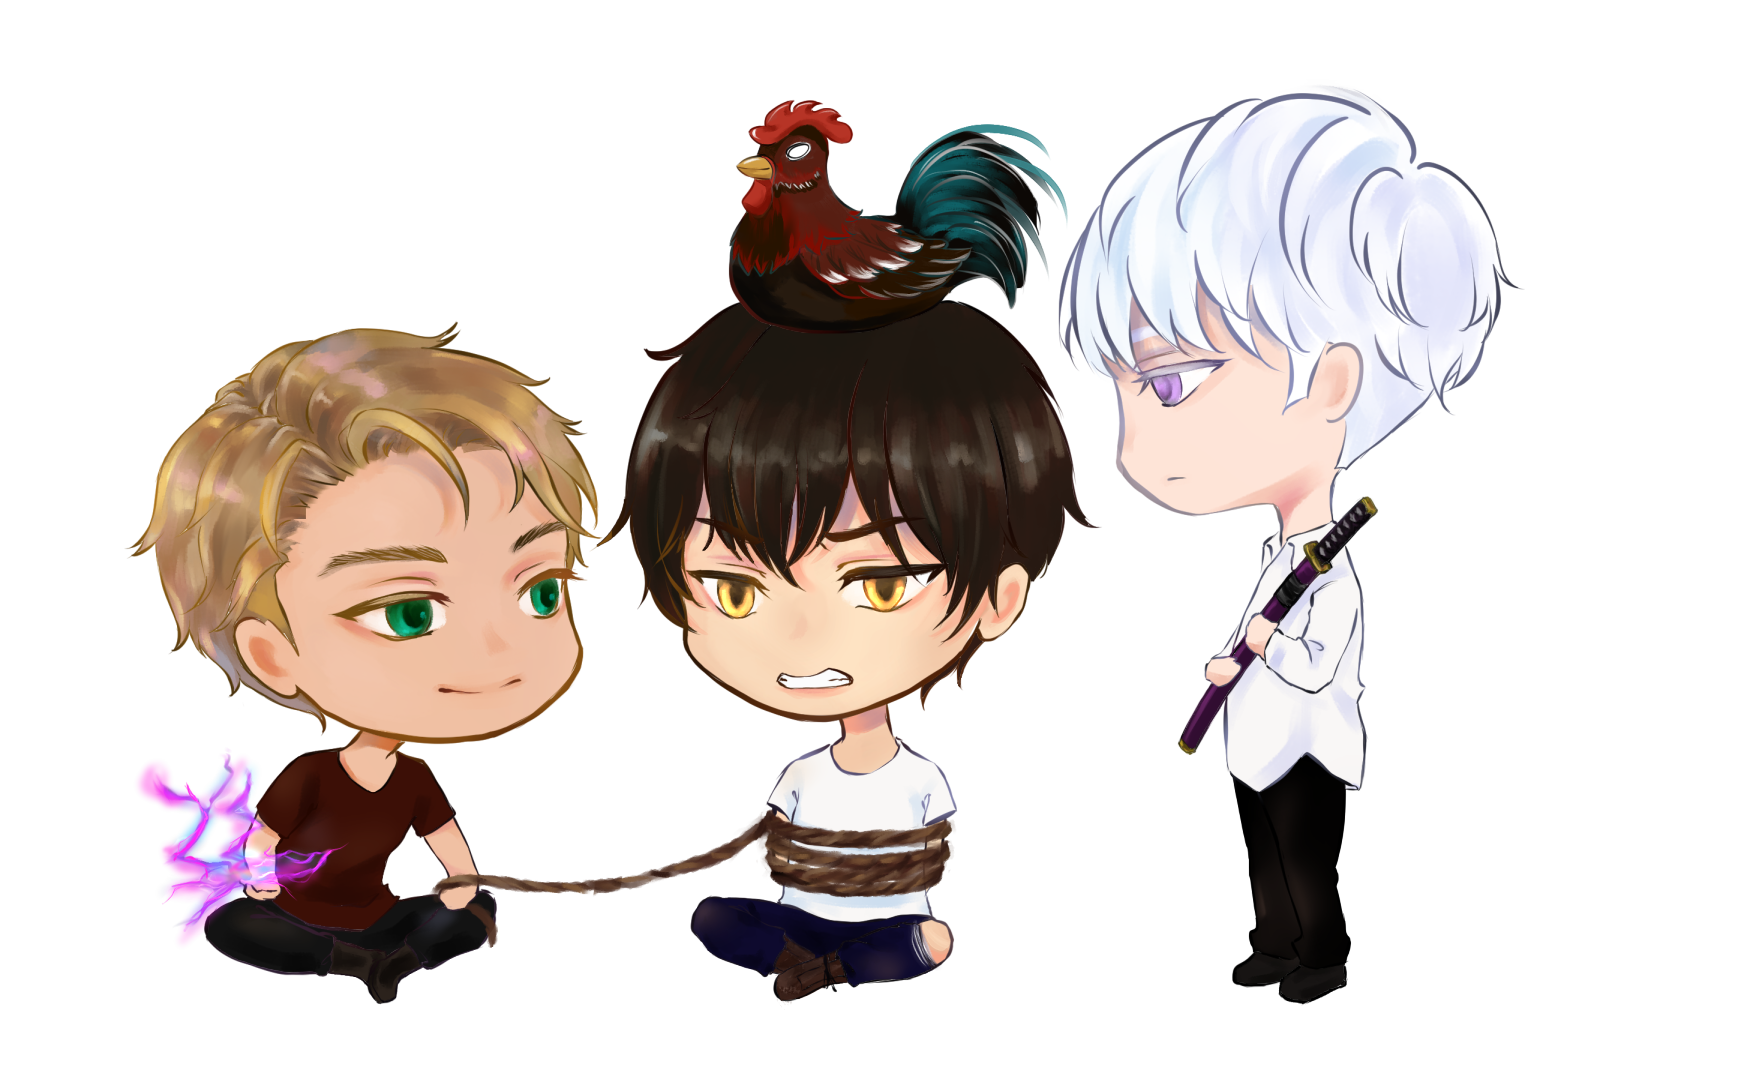 March_Chibi.png